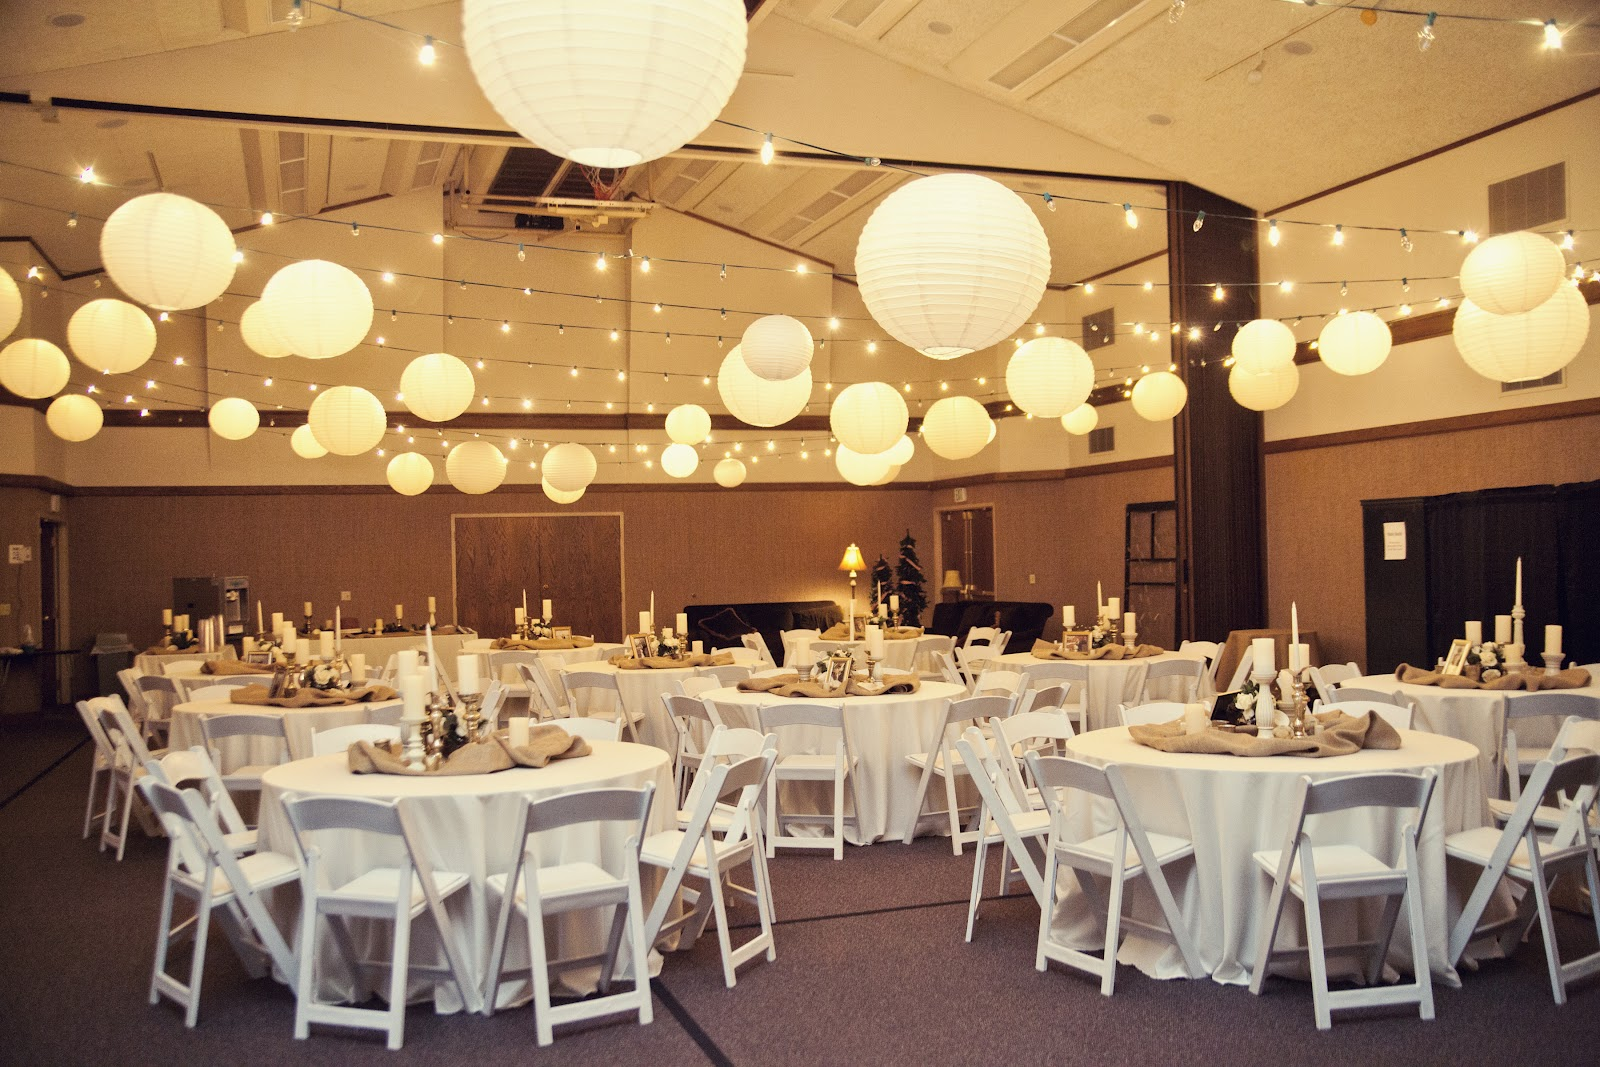 Beehive art salon wedding for Hall decoration pictures